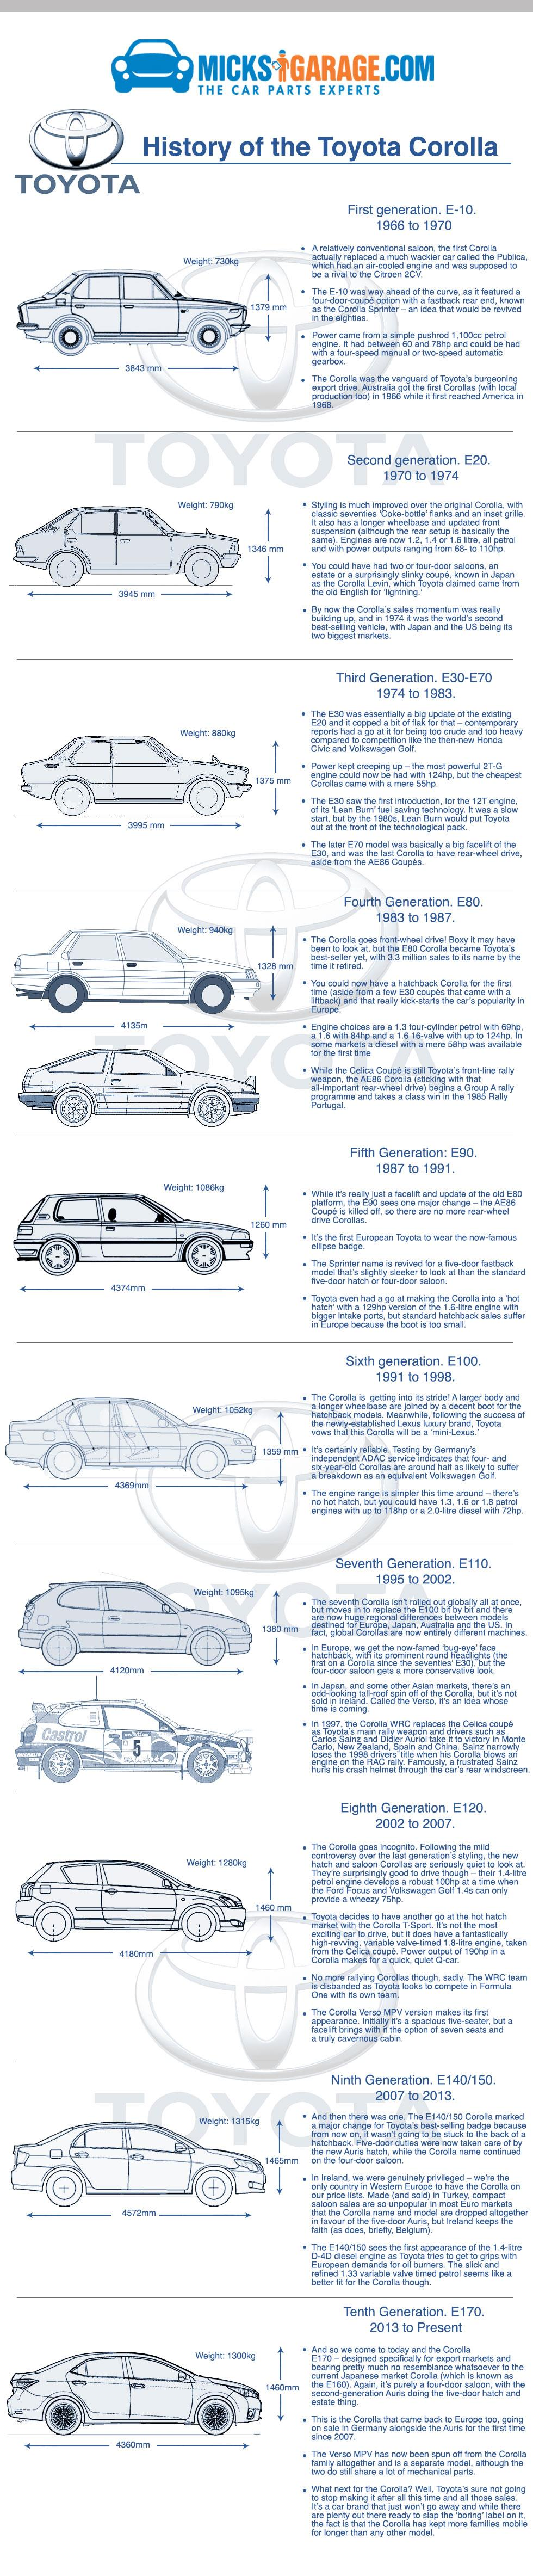 Infographic: History of the Toyota Corolla